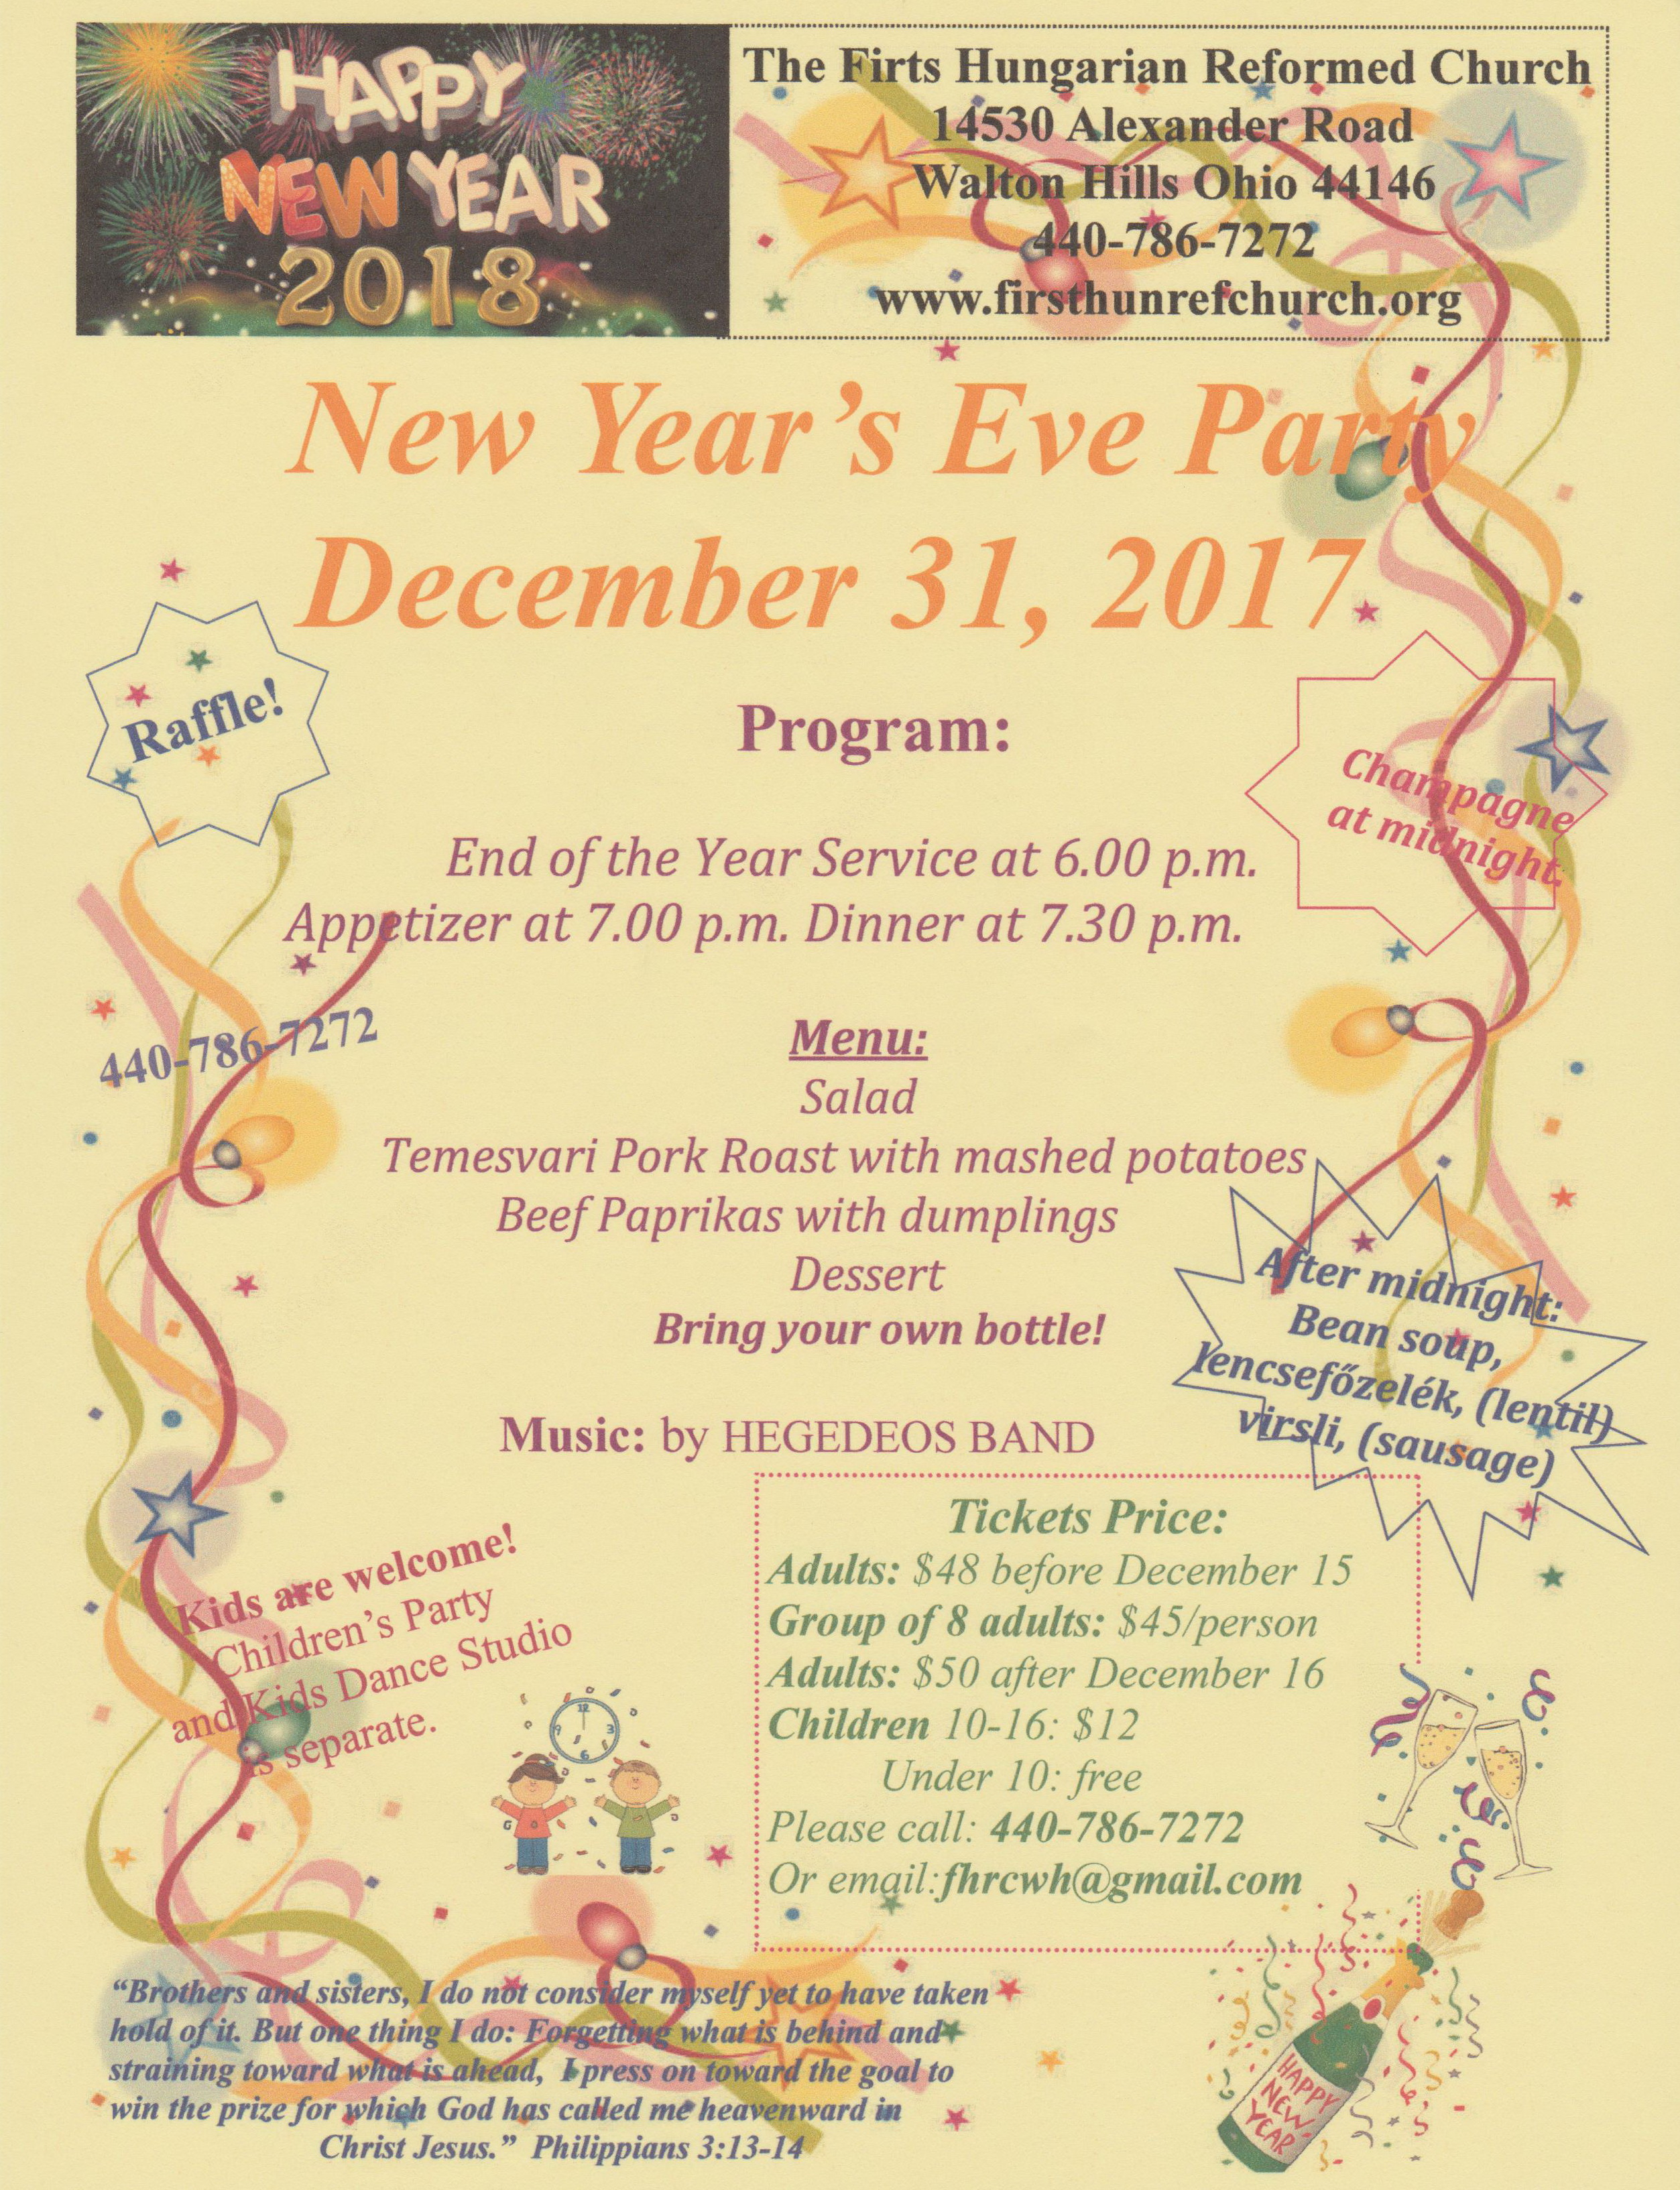 New Year's Eve Party<br> Sunday, December 31, 2017